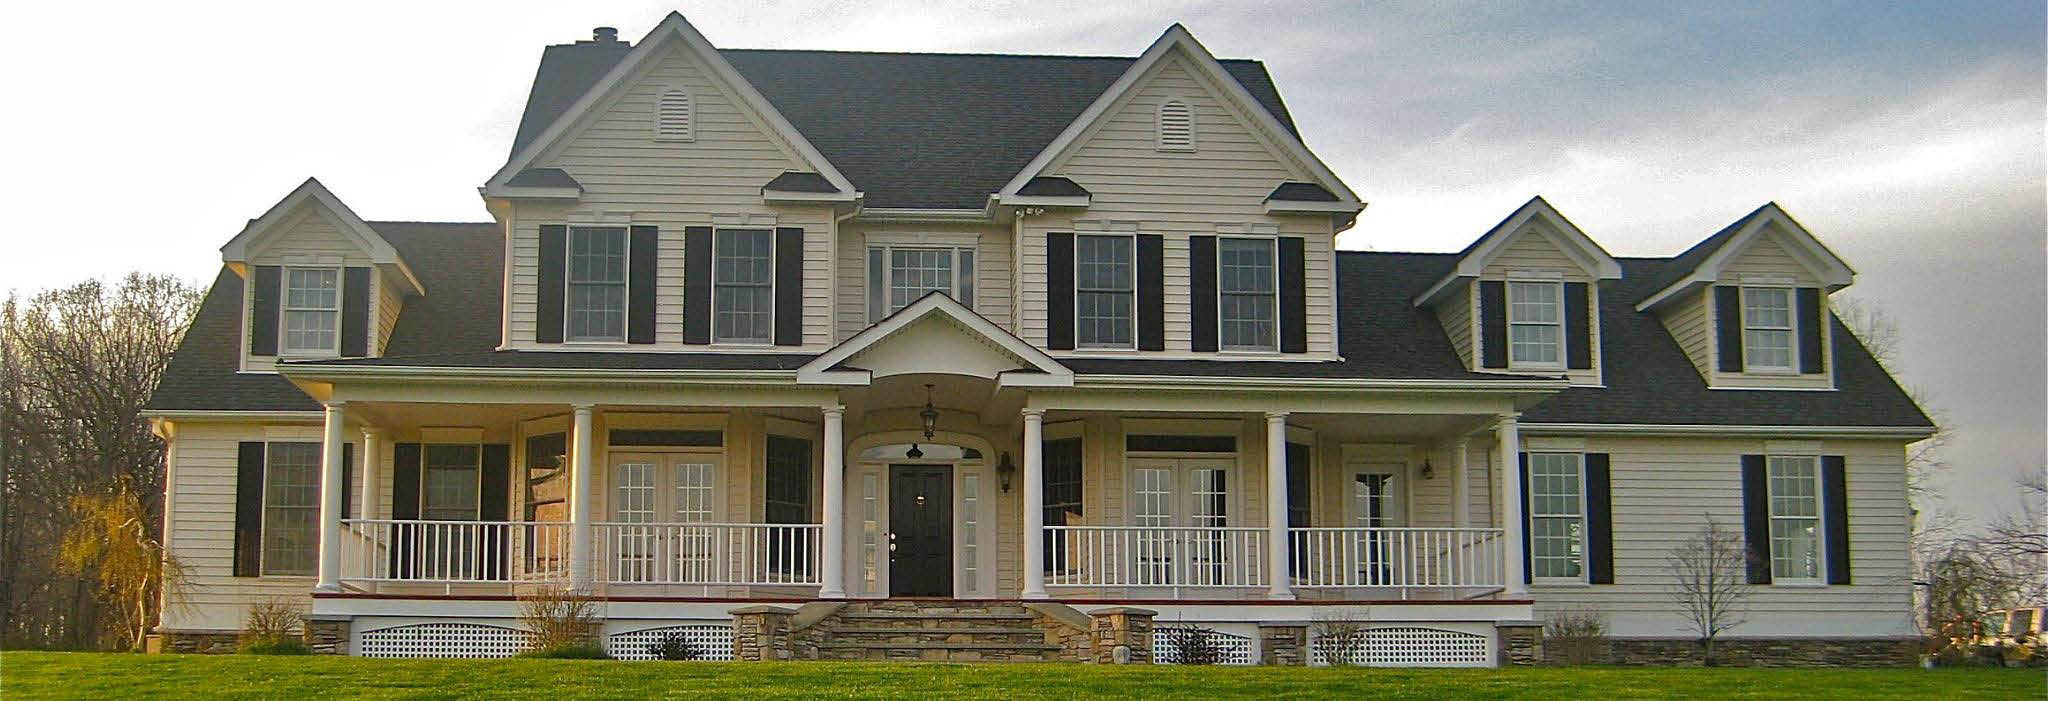 Energy Efficient Home in Hudson Valley, NY